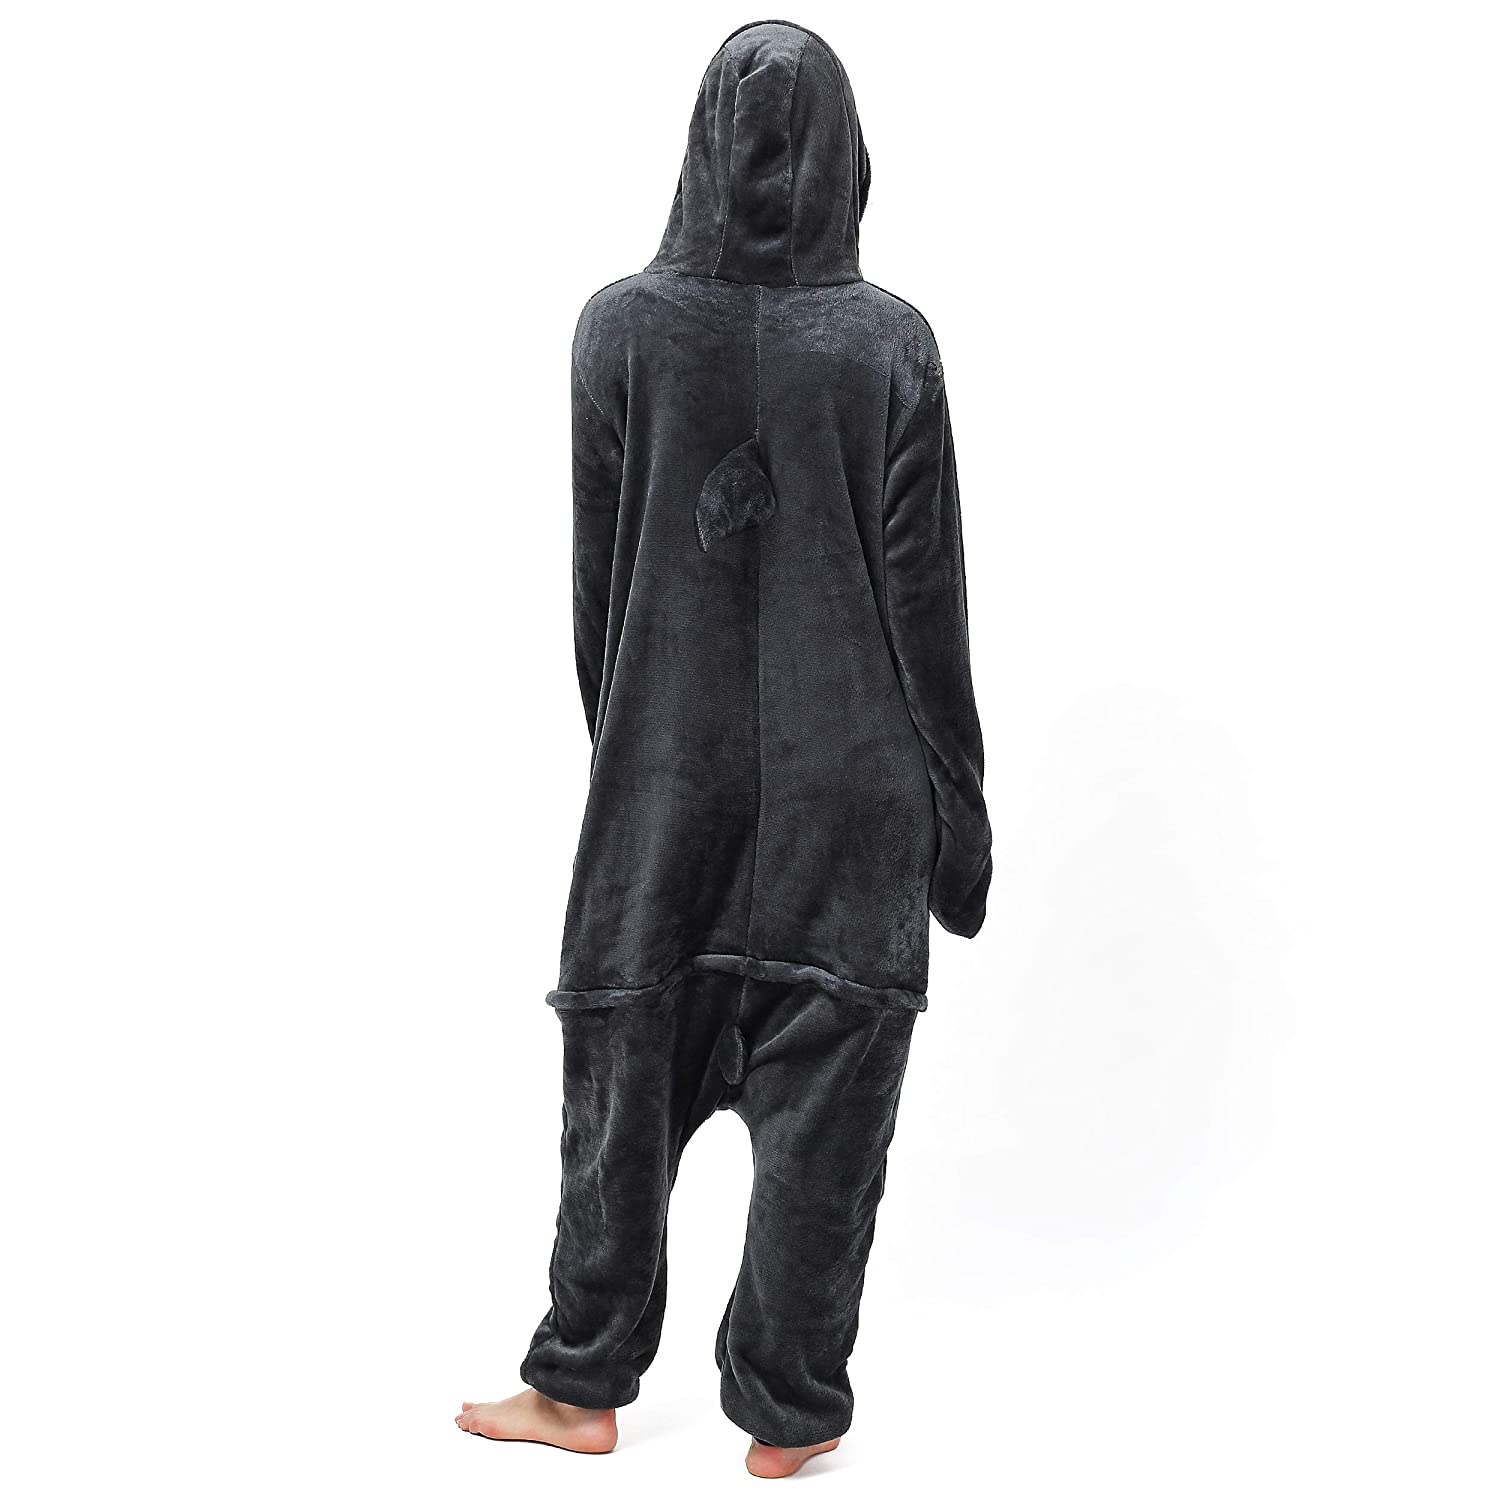 Body Height 145-155cm Katara 1744 Animal Onesie Unisex Pyjamas Adults Teenagers Black Shark 10+ Designs